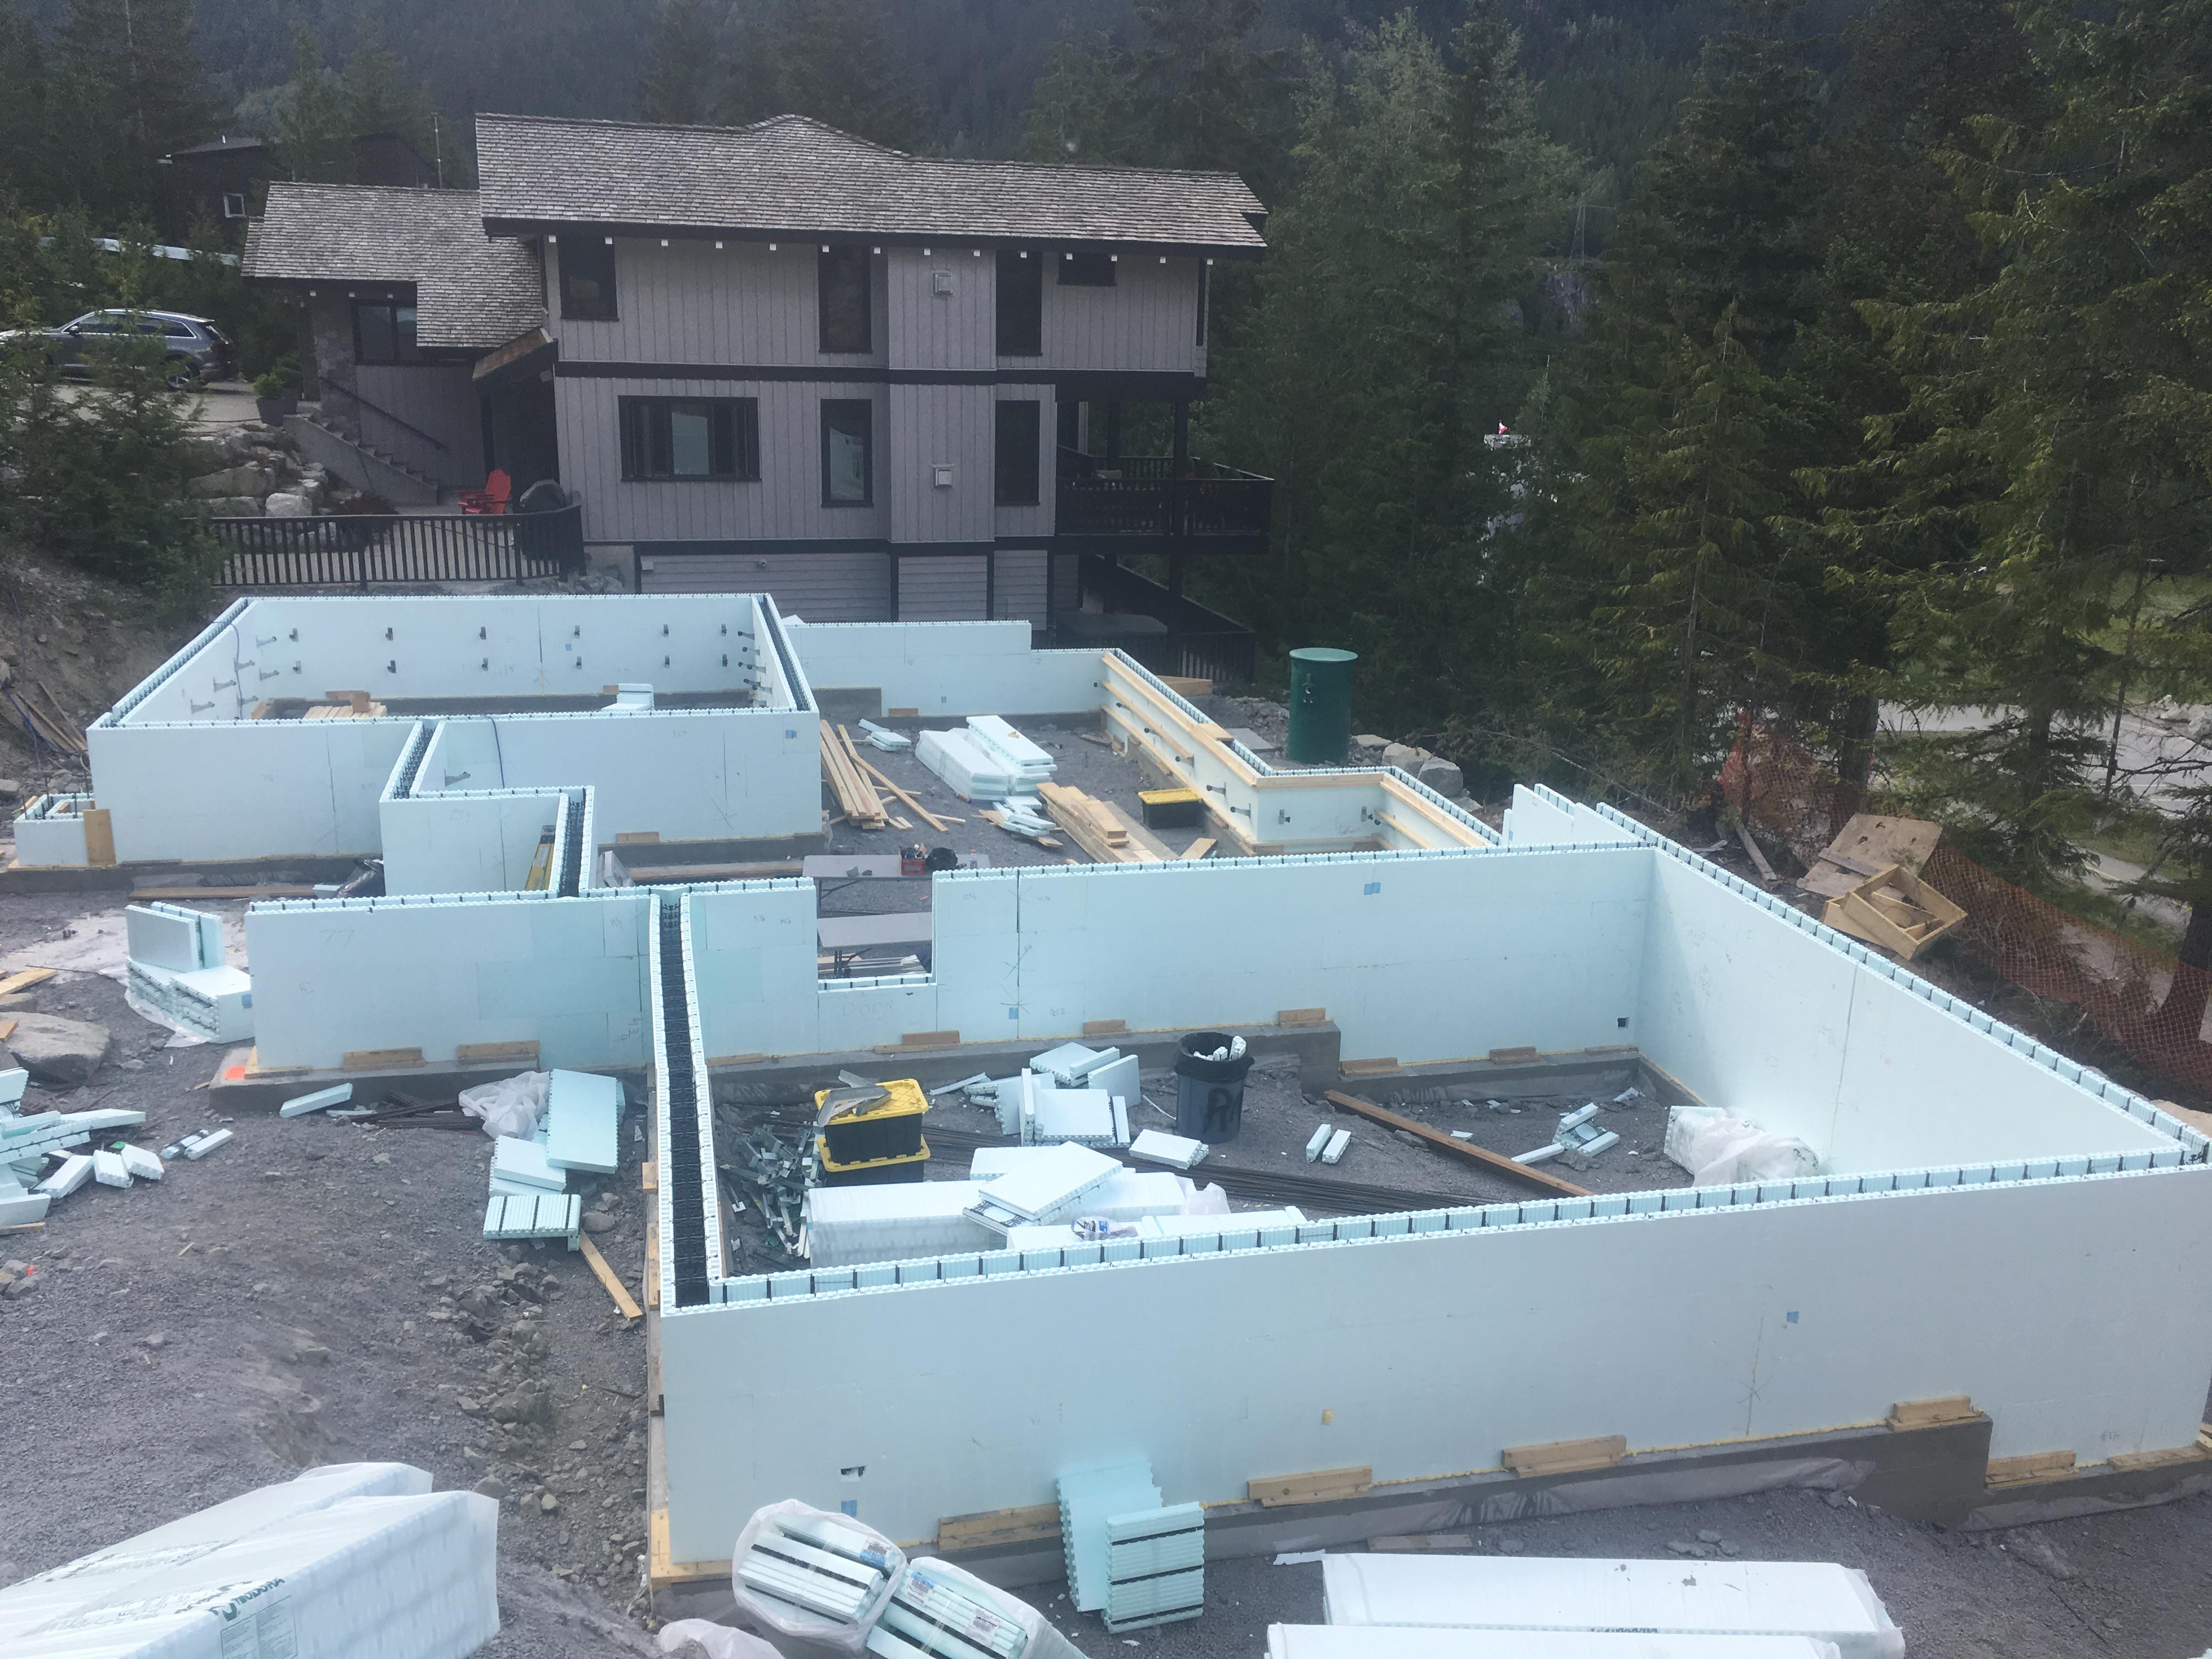 Pound 4 Pound, Framing and Forming. Wall forming Whistler